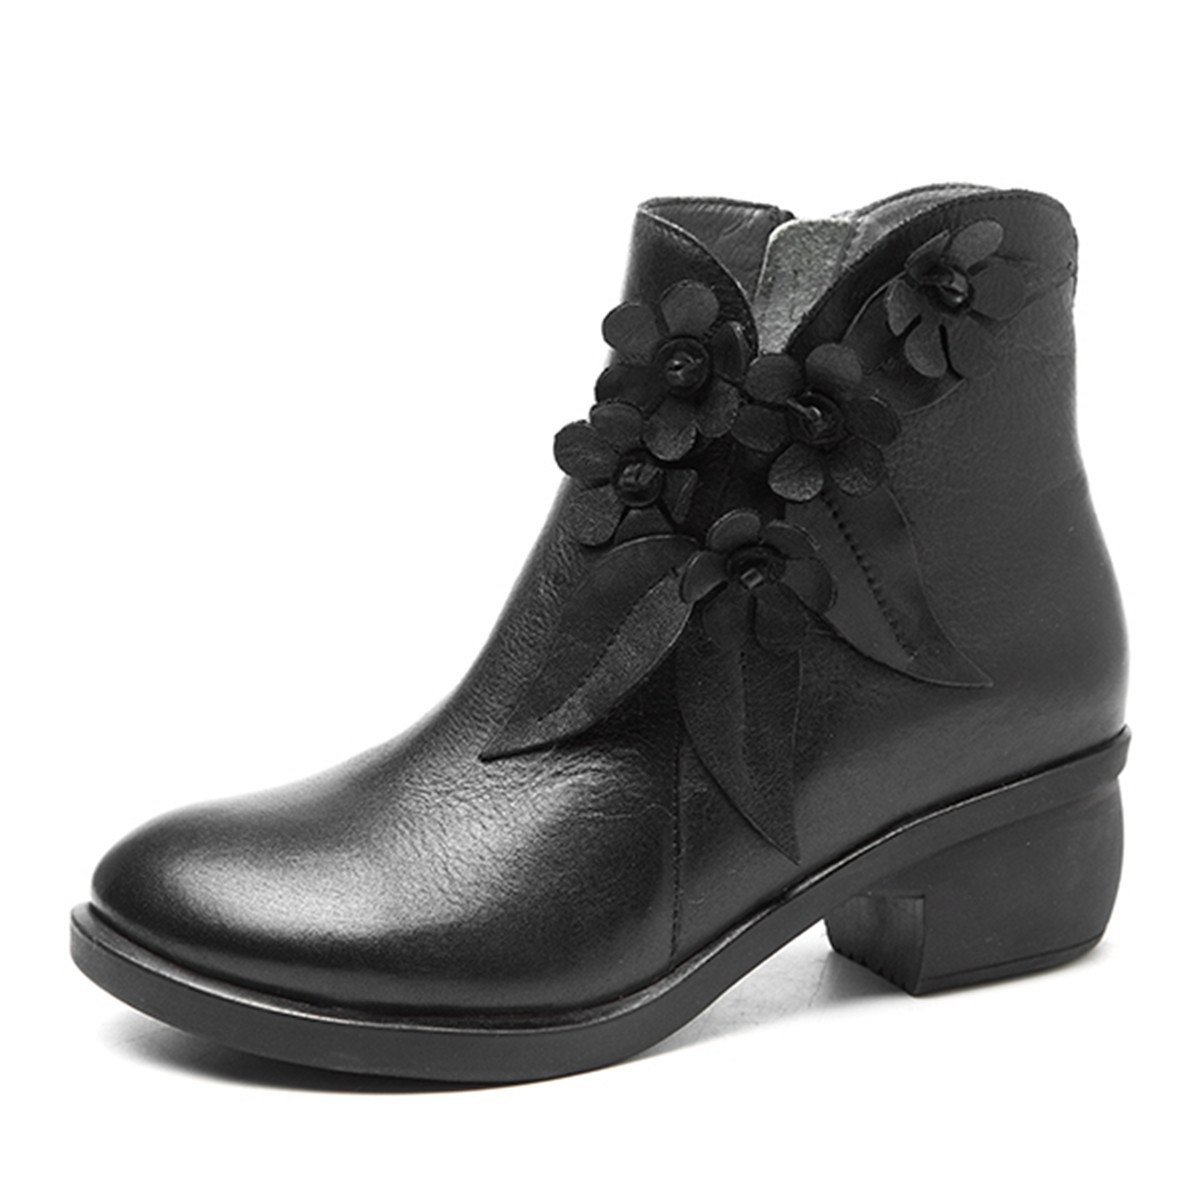 Socofy Leather Ankle Bootie, Women's Vintage Handmade Fashion Leather Boot Rose Floral Shoes Oxford Boots B077G8H64W 7 M US|Black Style 2